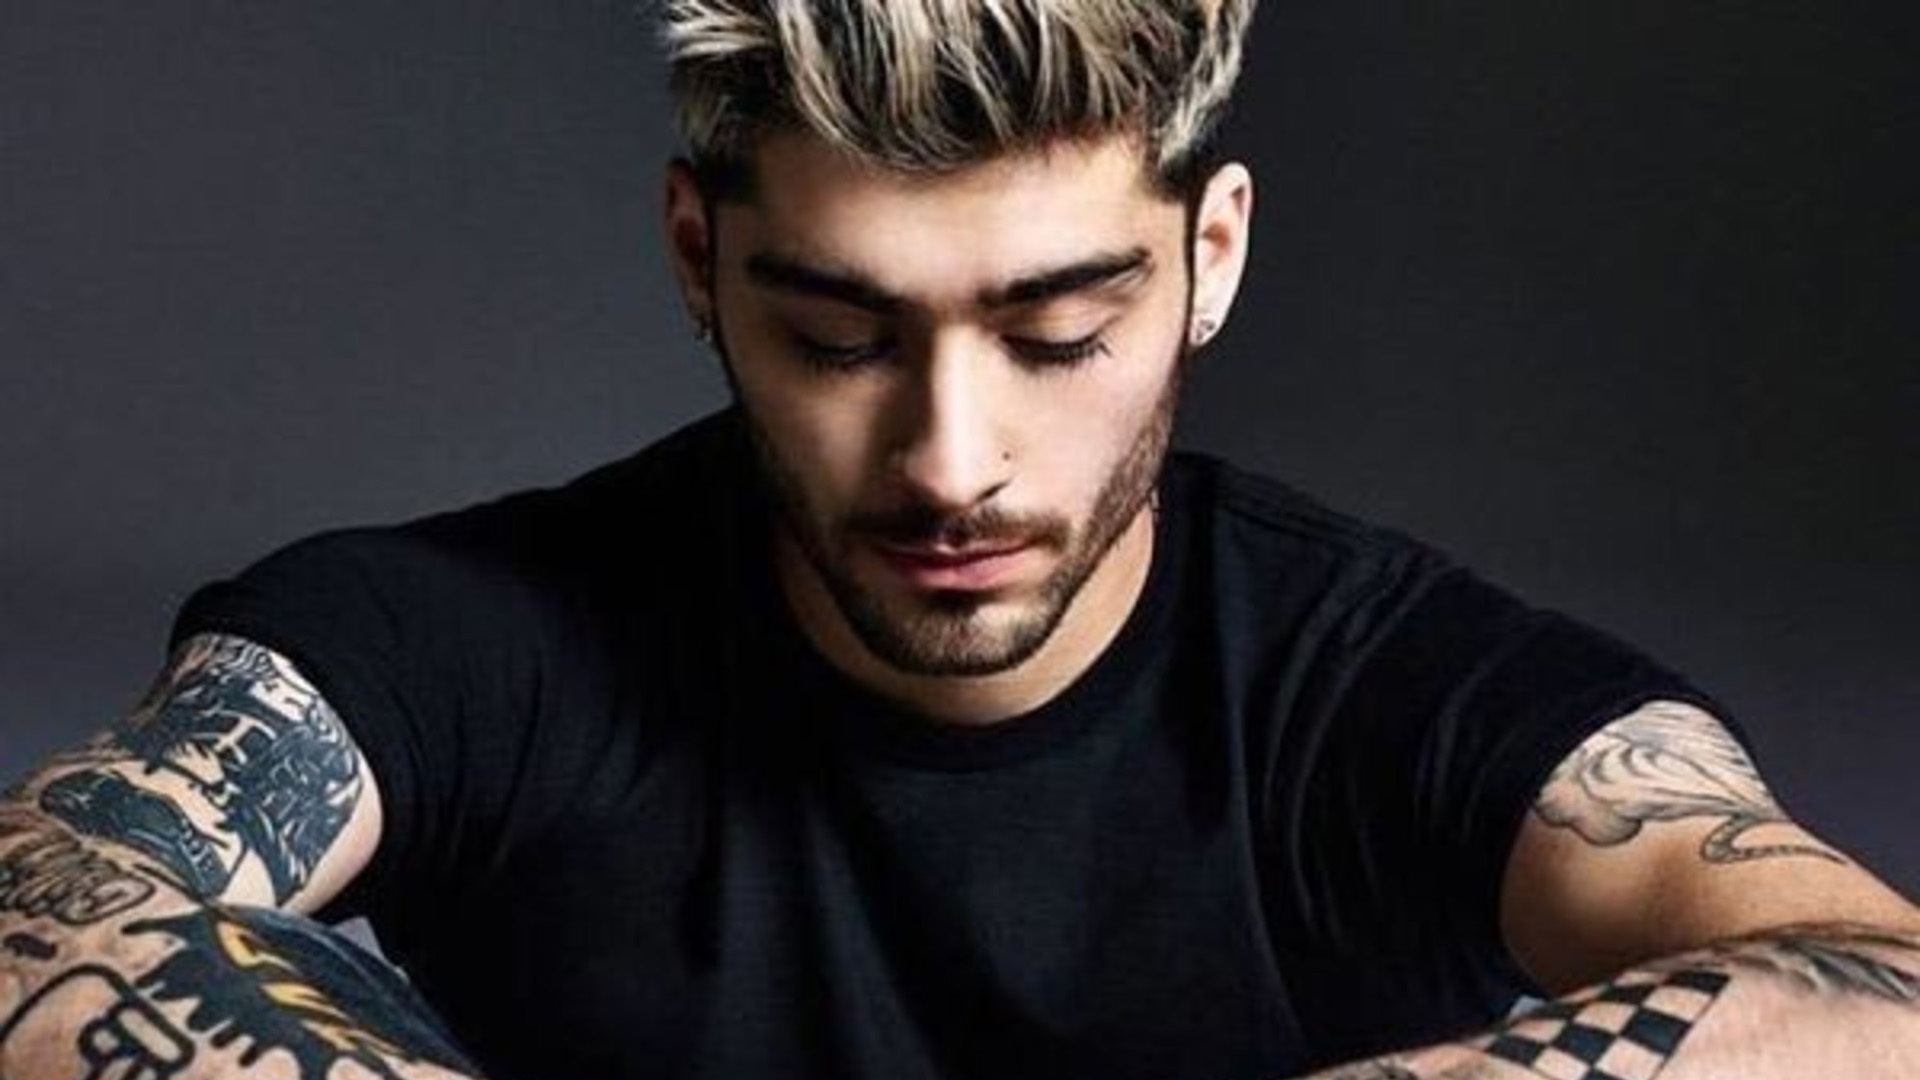 Zayn Malik Wallpapers Images Photos Pictures Backgrounds